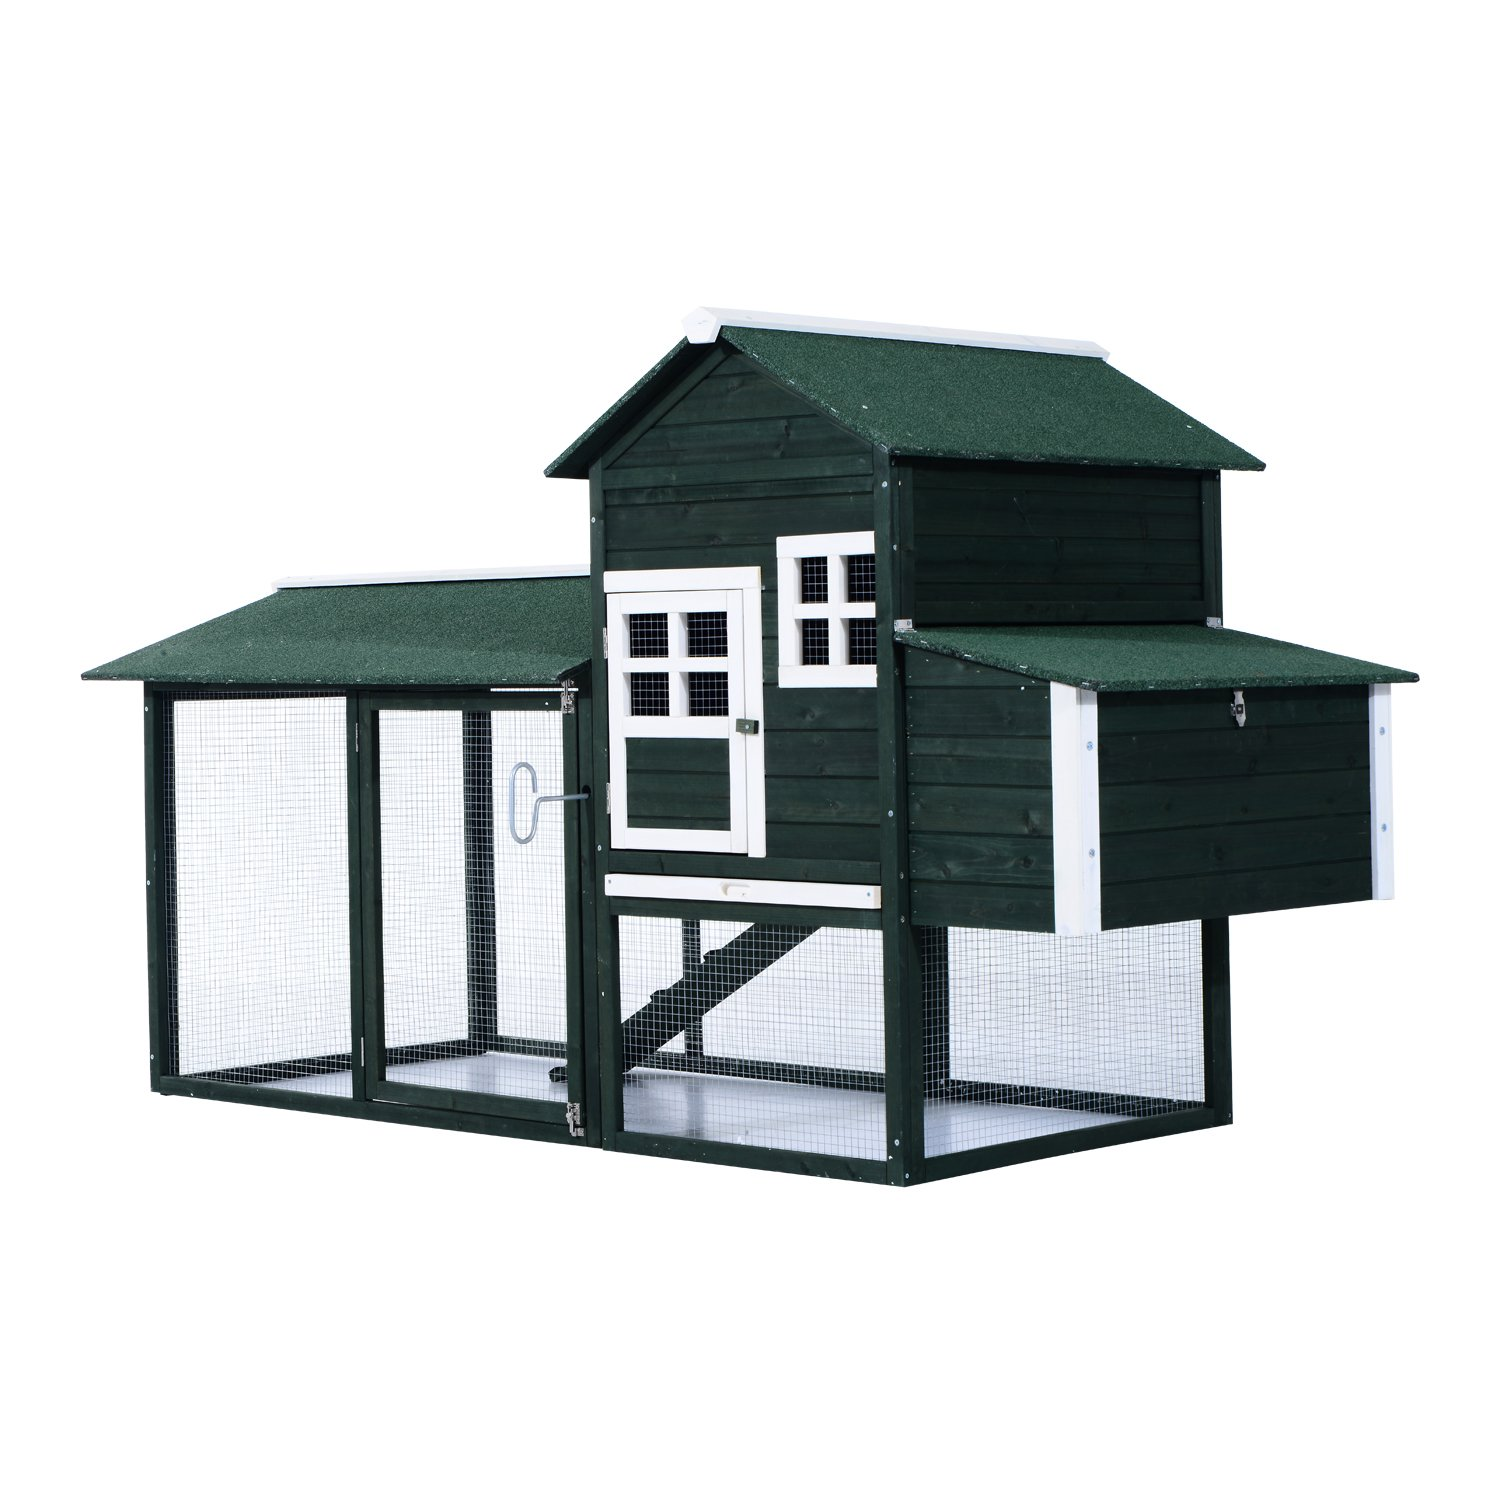 PawHut 83'' Wooden Backyard Chicken Coop with Covered Run and Nesting Box by PawHut